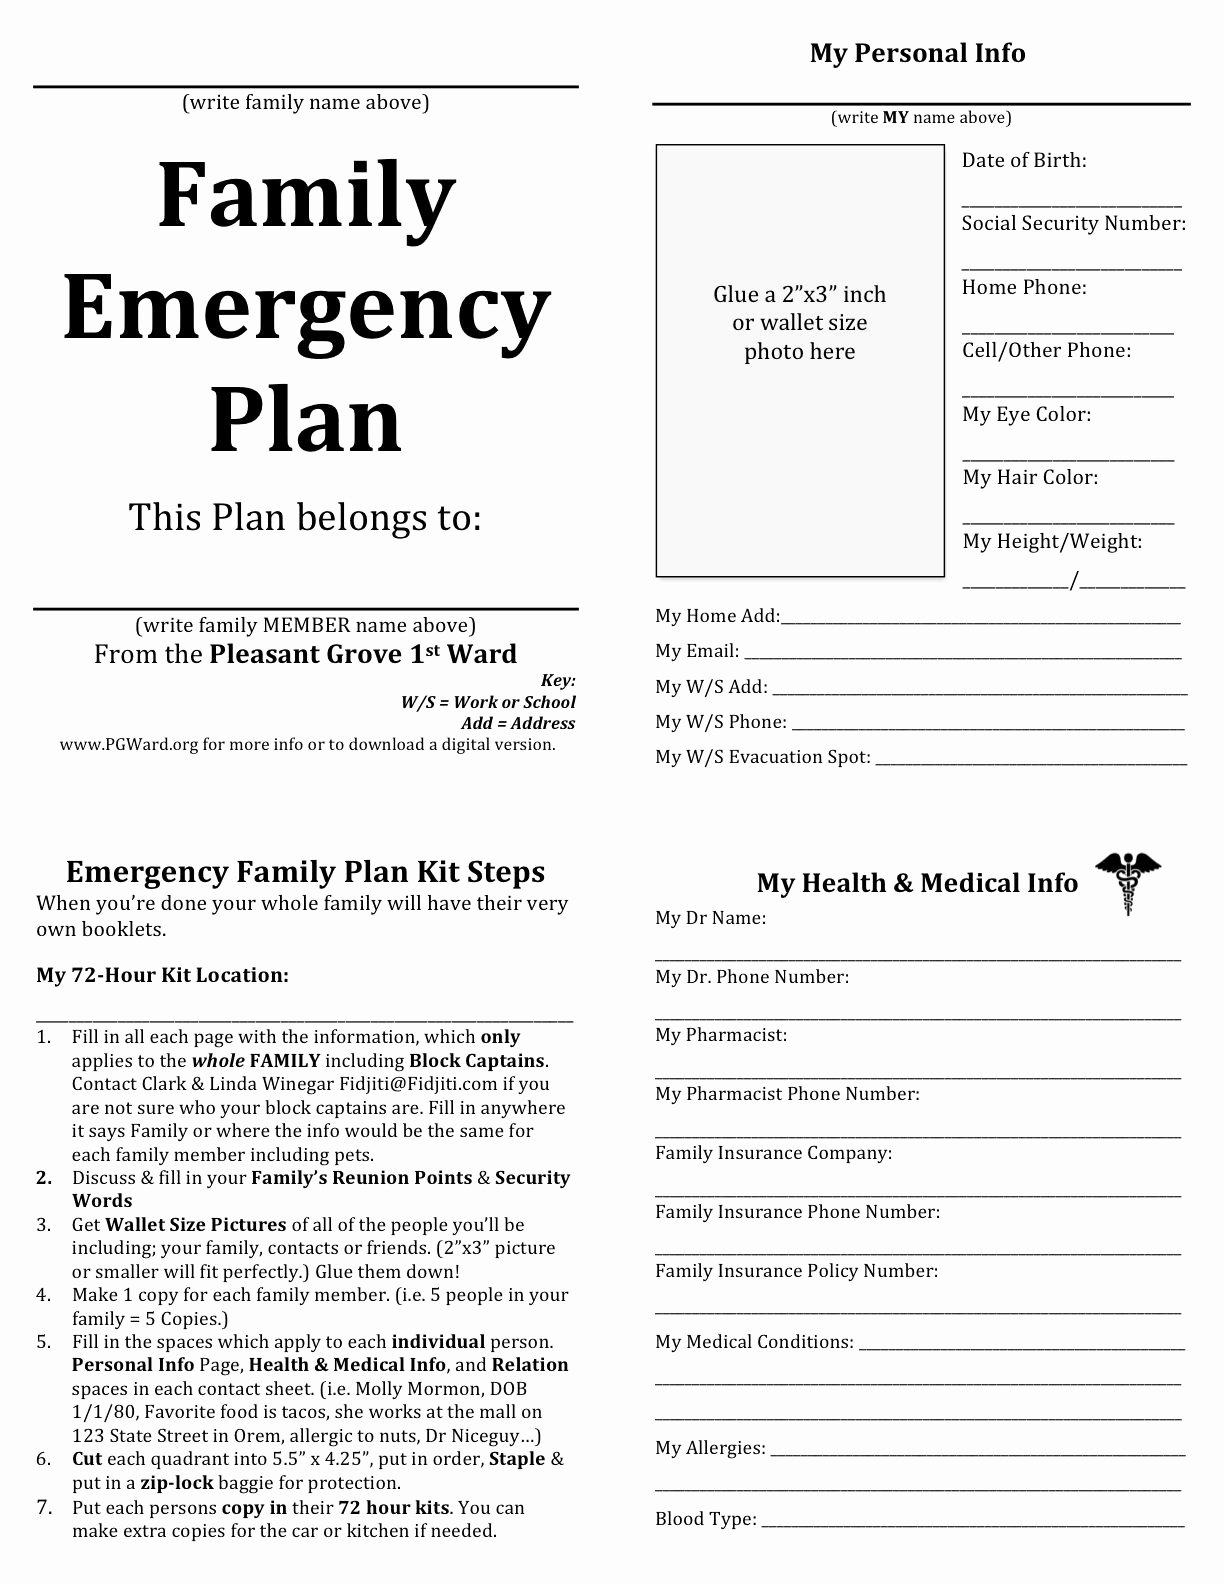 Daycare Emergency Preparedness Plan Template Elegant Family Emergency Plan Printable Documents for Your